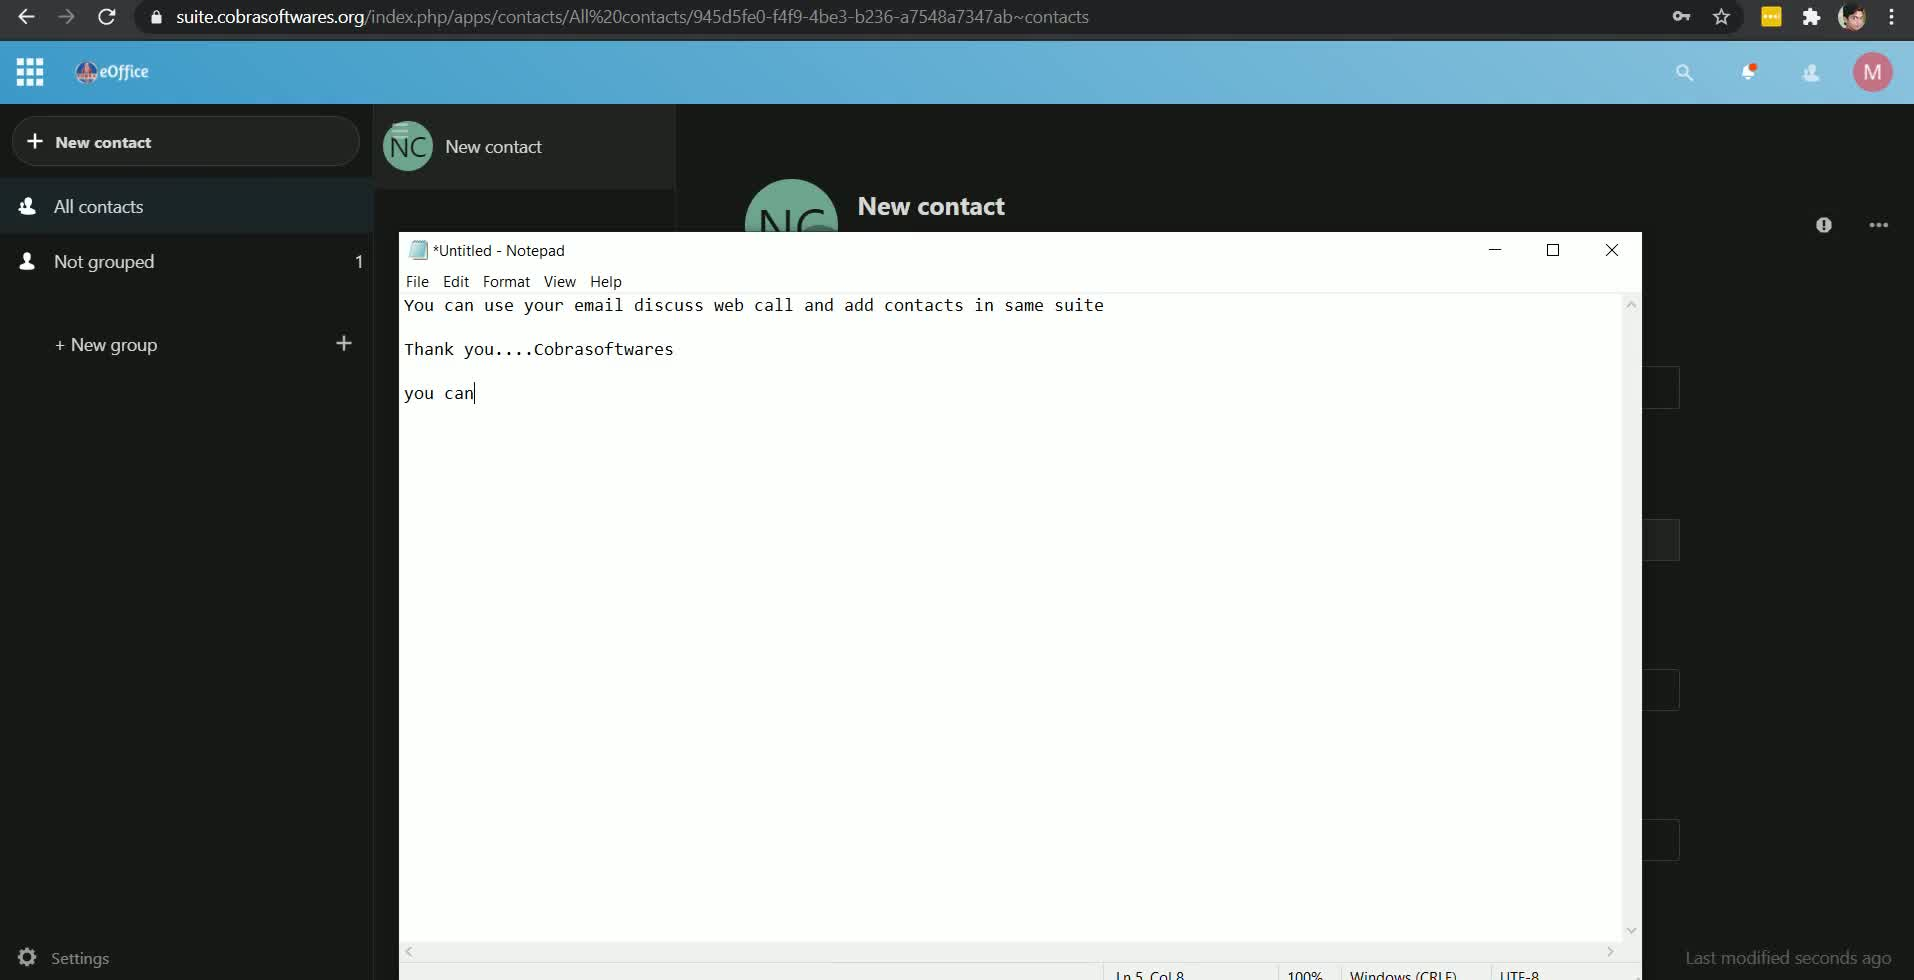 How to use cobra suite